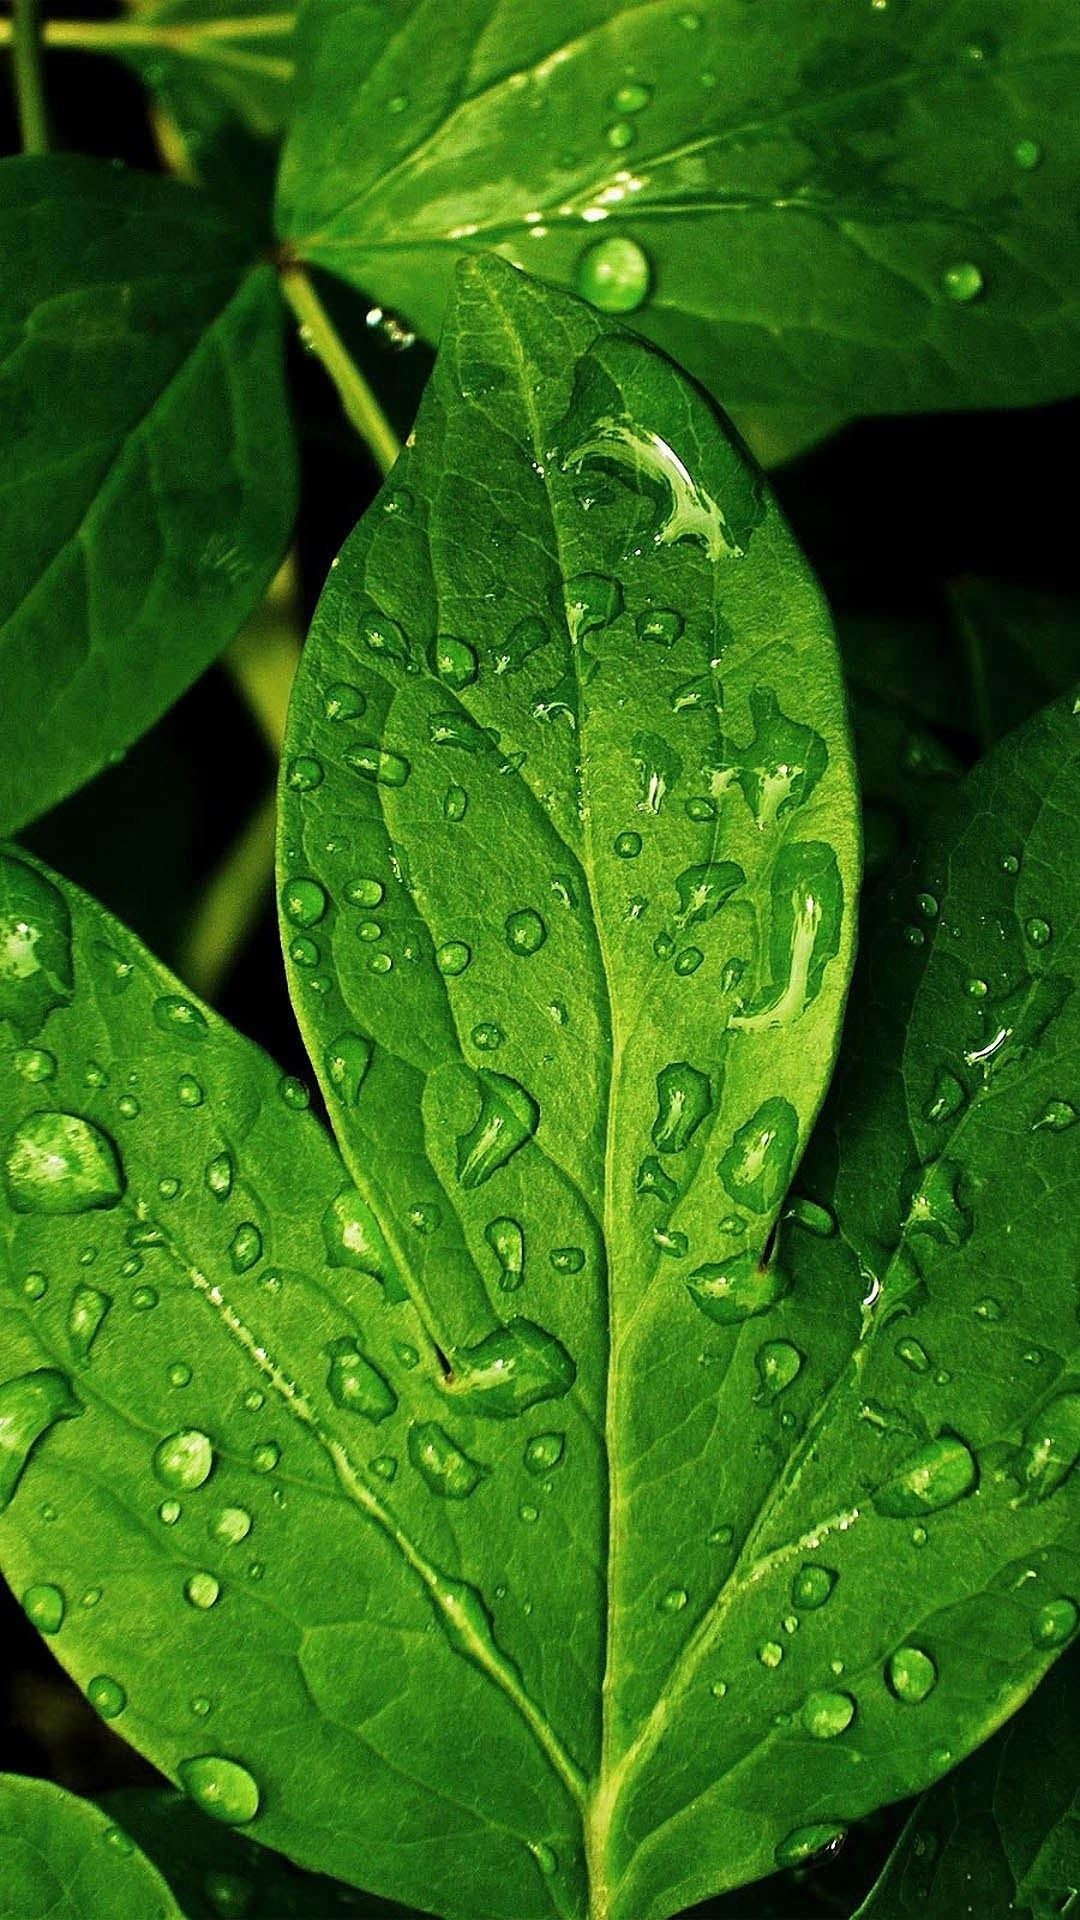 Htc One M8 Wallpaper Hd Morning Dew Green Leaf Best Htc One Wallpapers